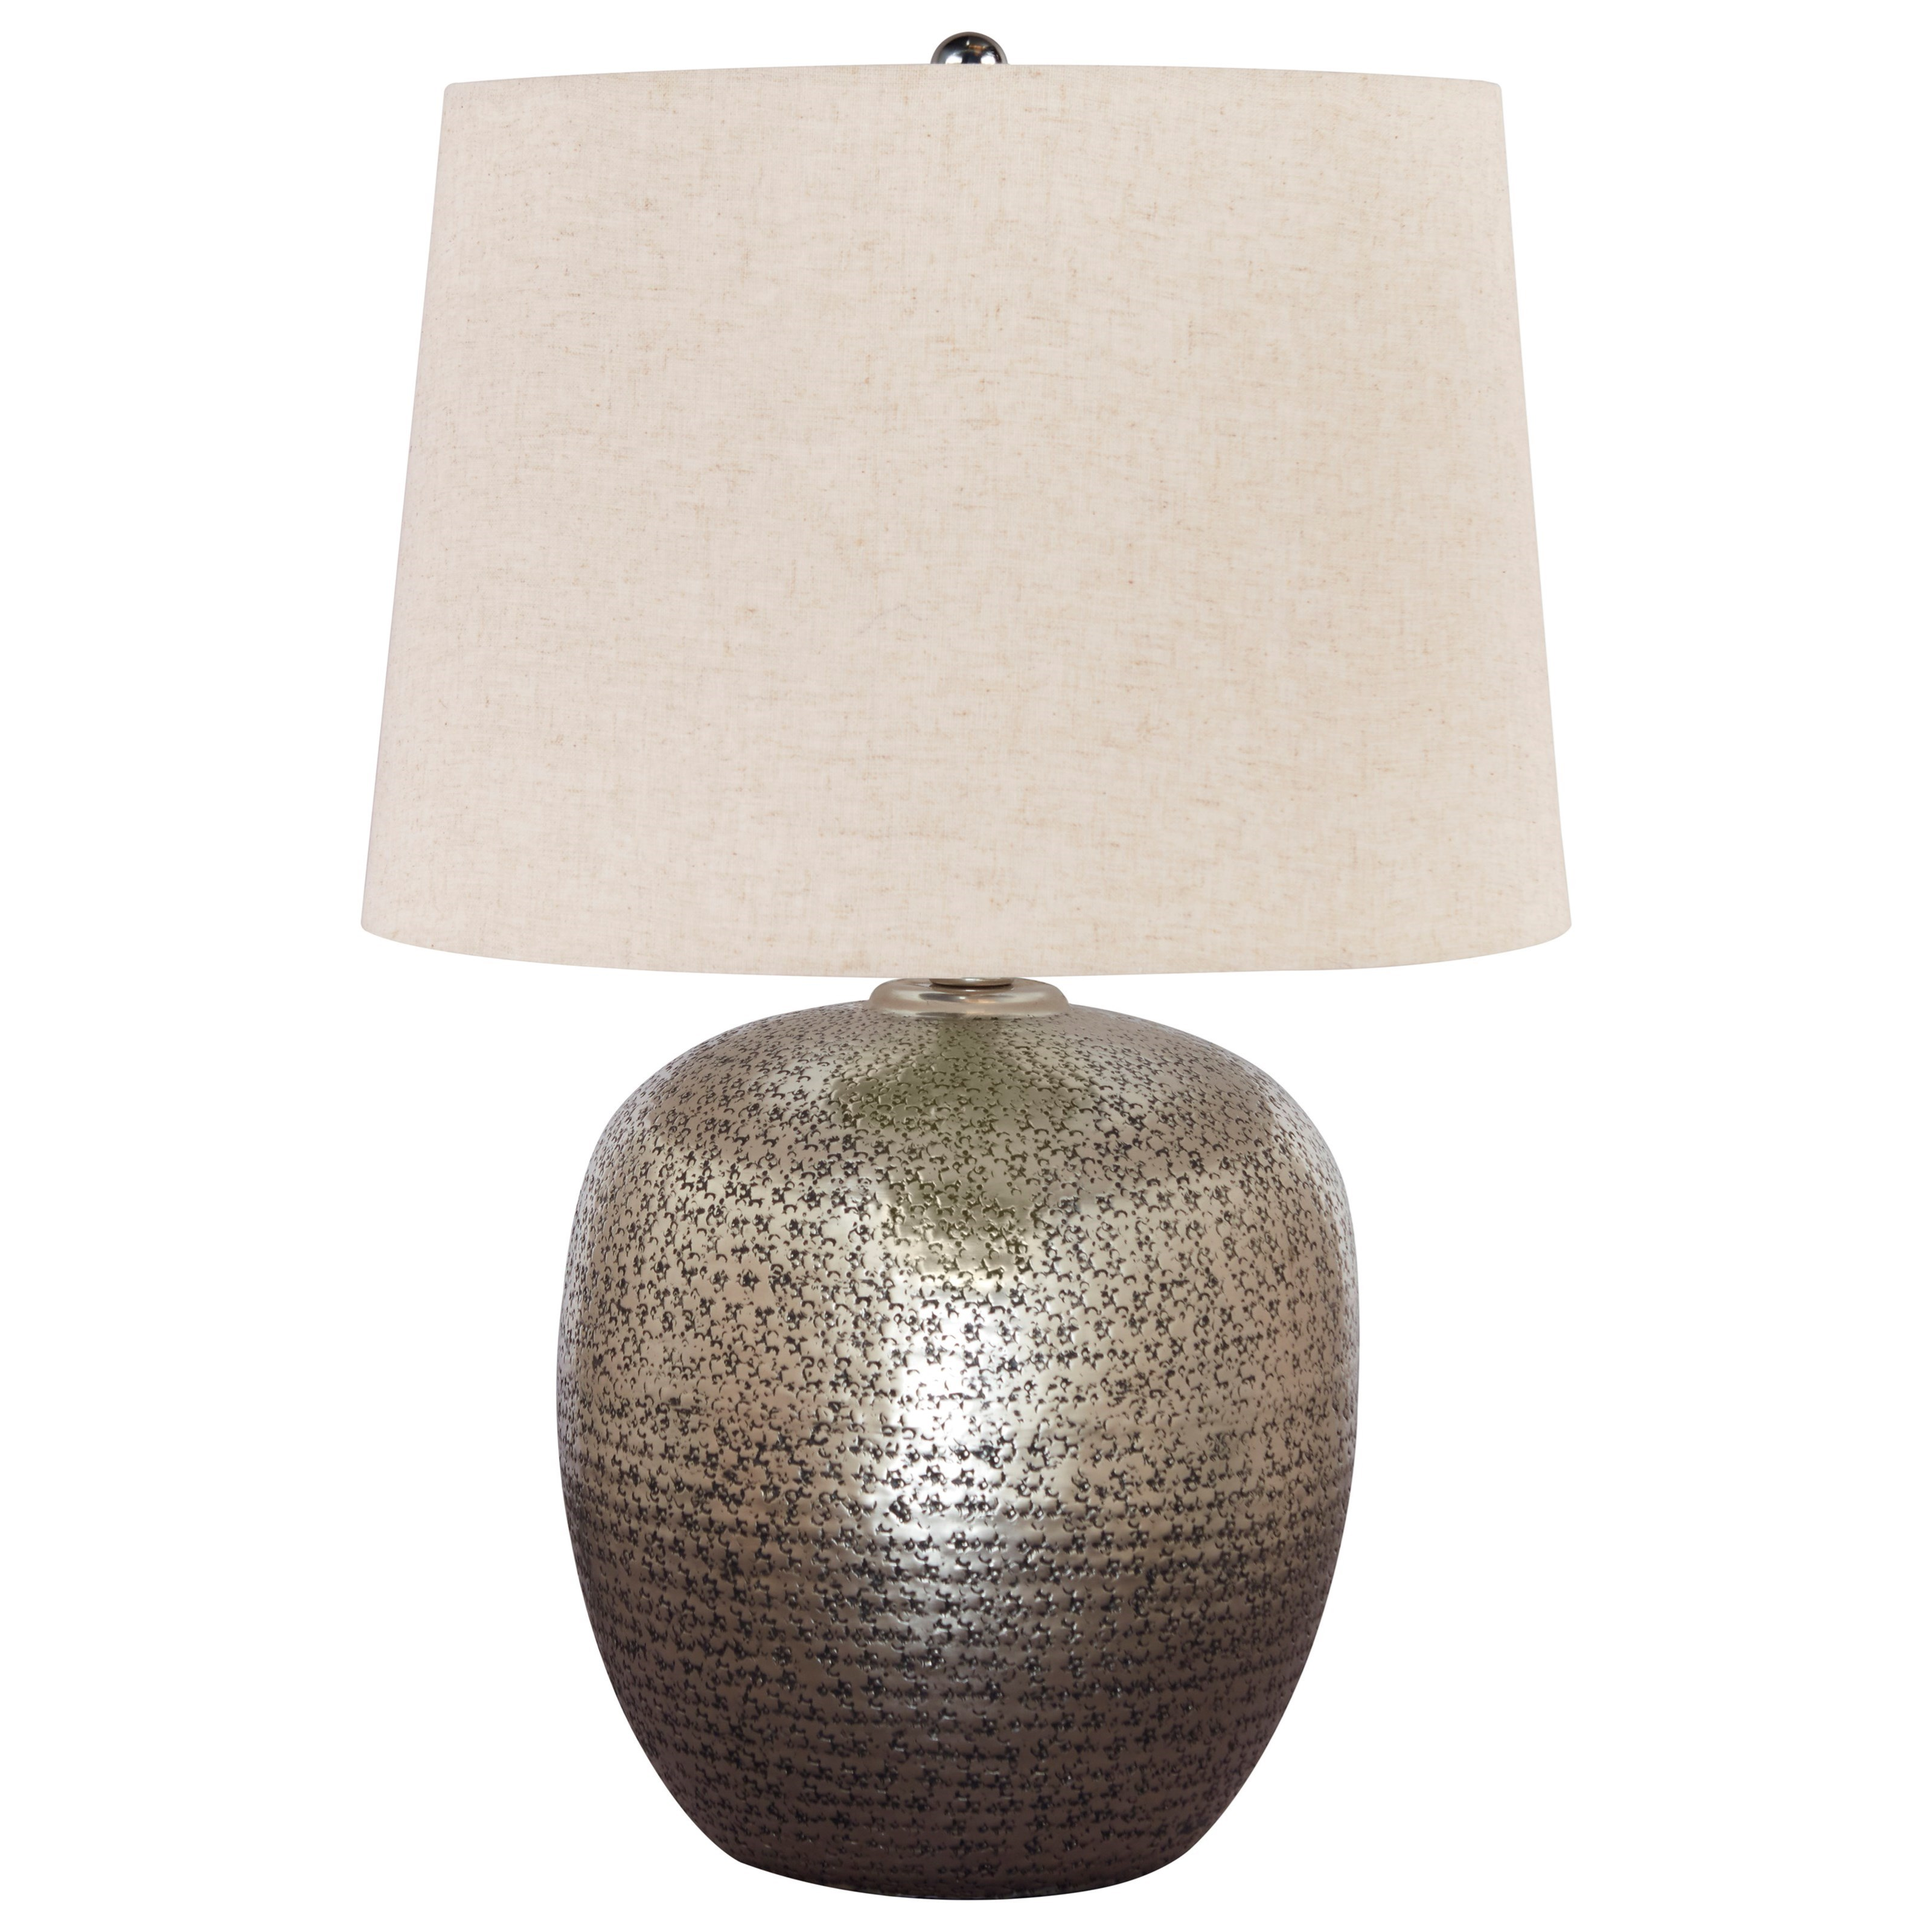 Lamps - Contemporary Magalie Antique Silver Metal Table Lamp by Ashley (Signature Design) at Johnny Janosik